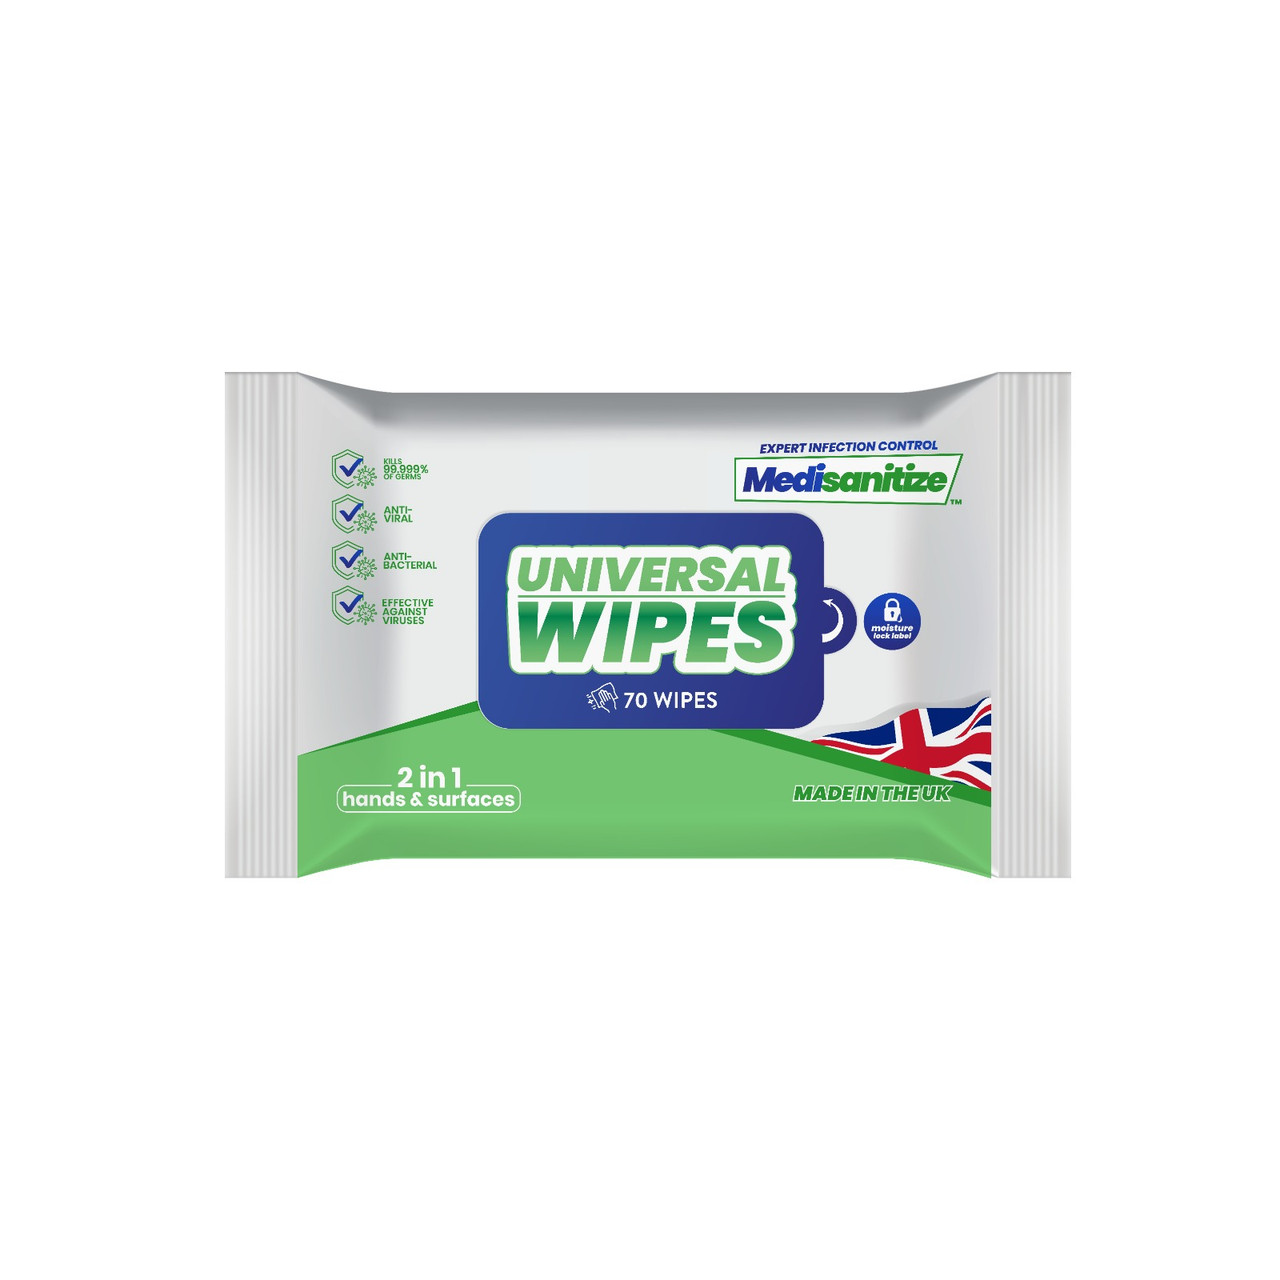 CHW98001 Antibacterial Sanitising Wipes Pack of 70 for Hand and Surfaces | Medisanitize